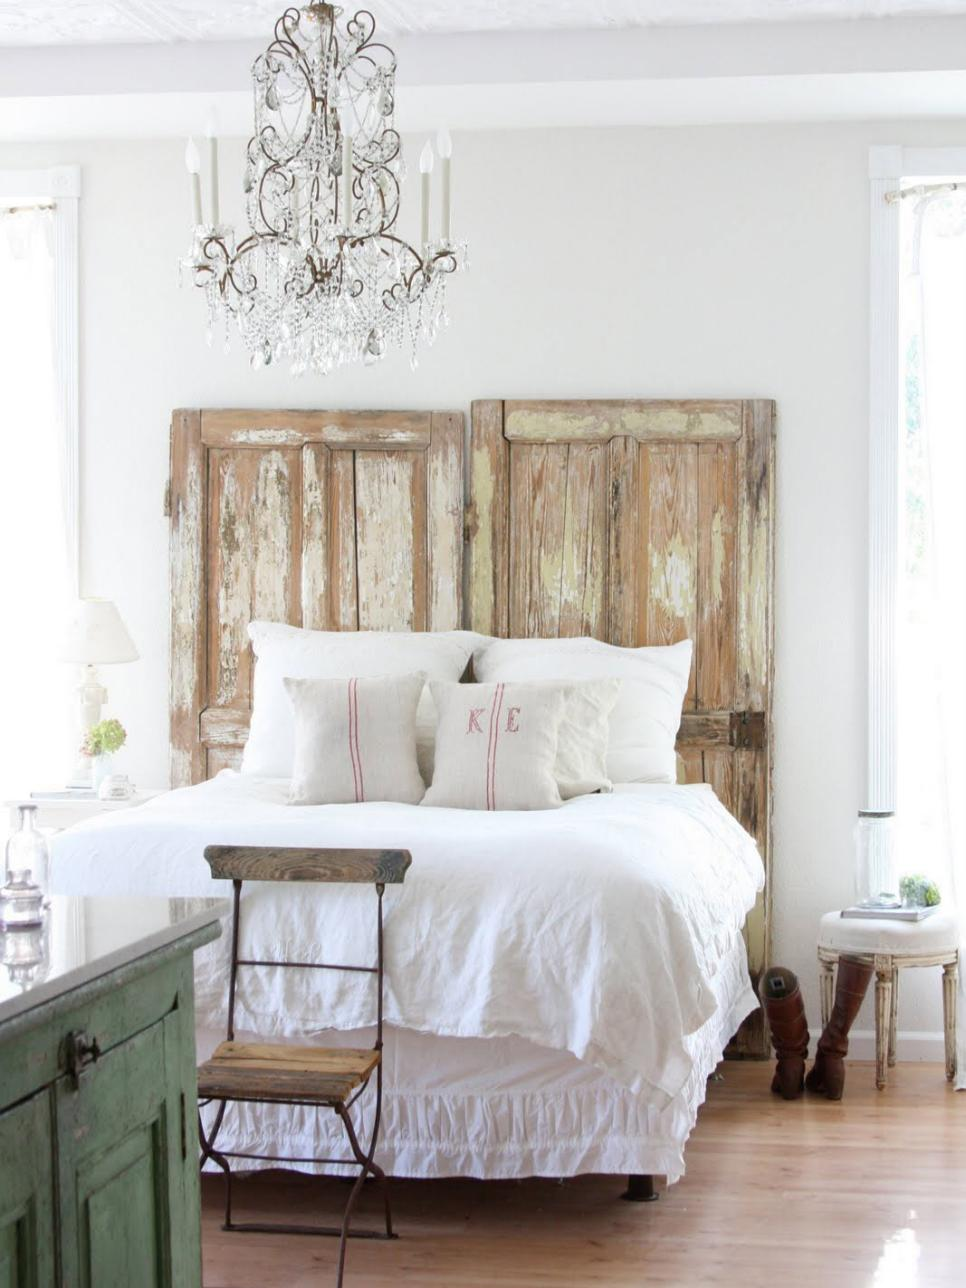 Don't Distress! It's Easy to Decorate With Distressed Wood! – How To Build It How to Decorate With Distressed Wood, Decorating With Distressed Wood, Distressed Wood 101, How to Distress Wood, Easy Tips for Weathering Wood, Popular DIY Pin